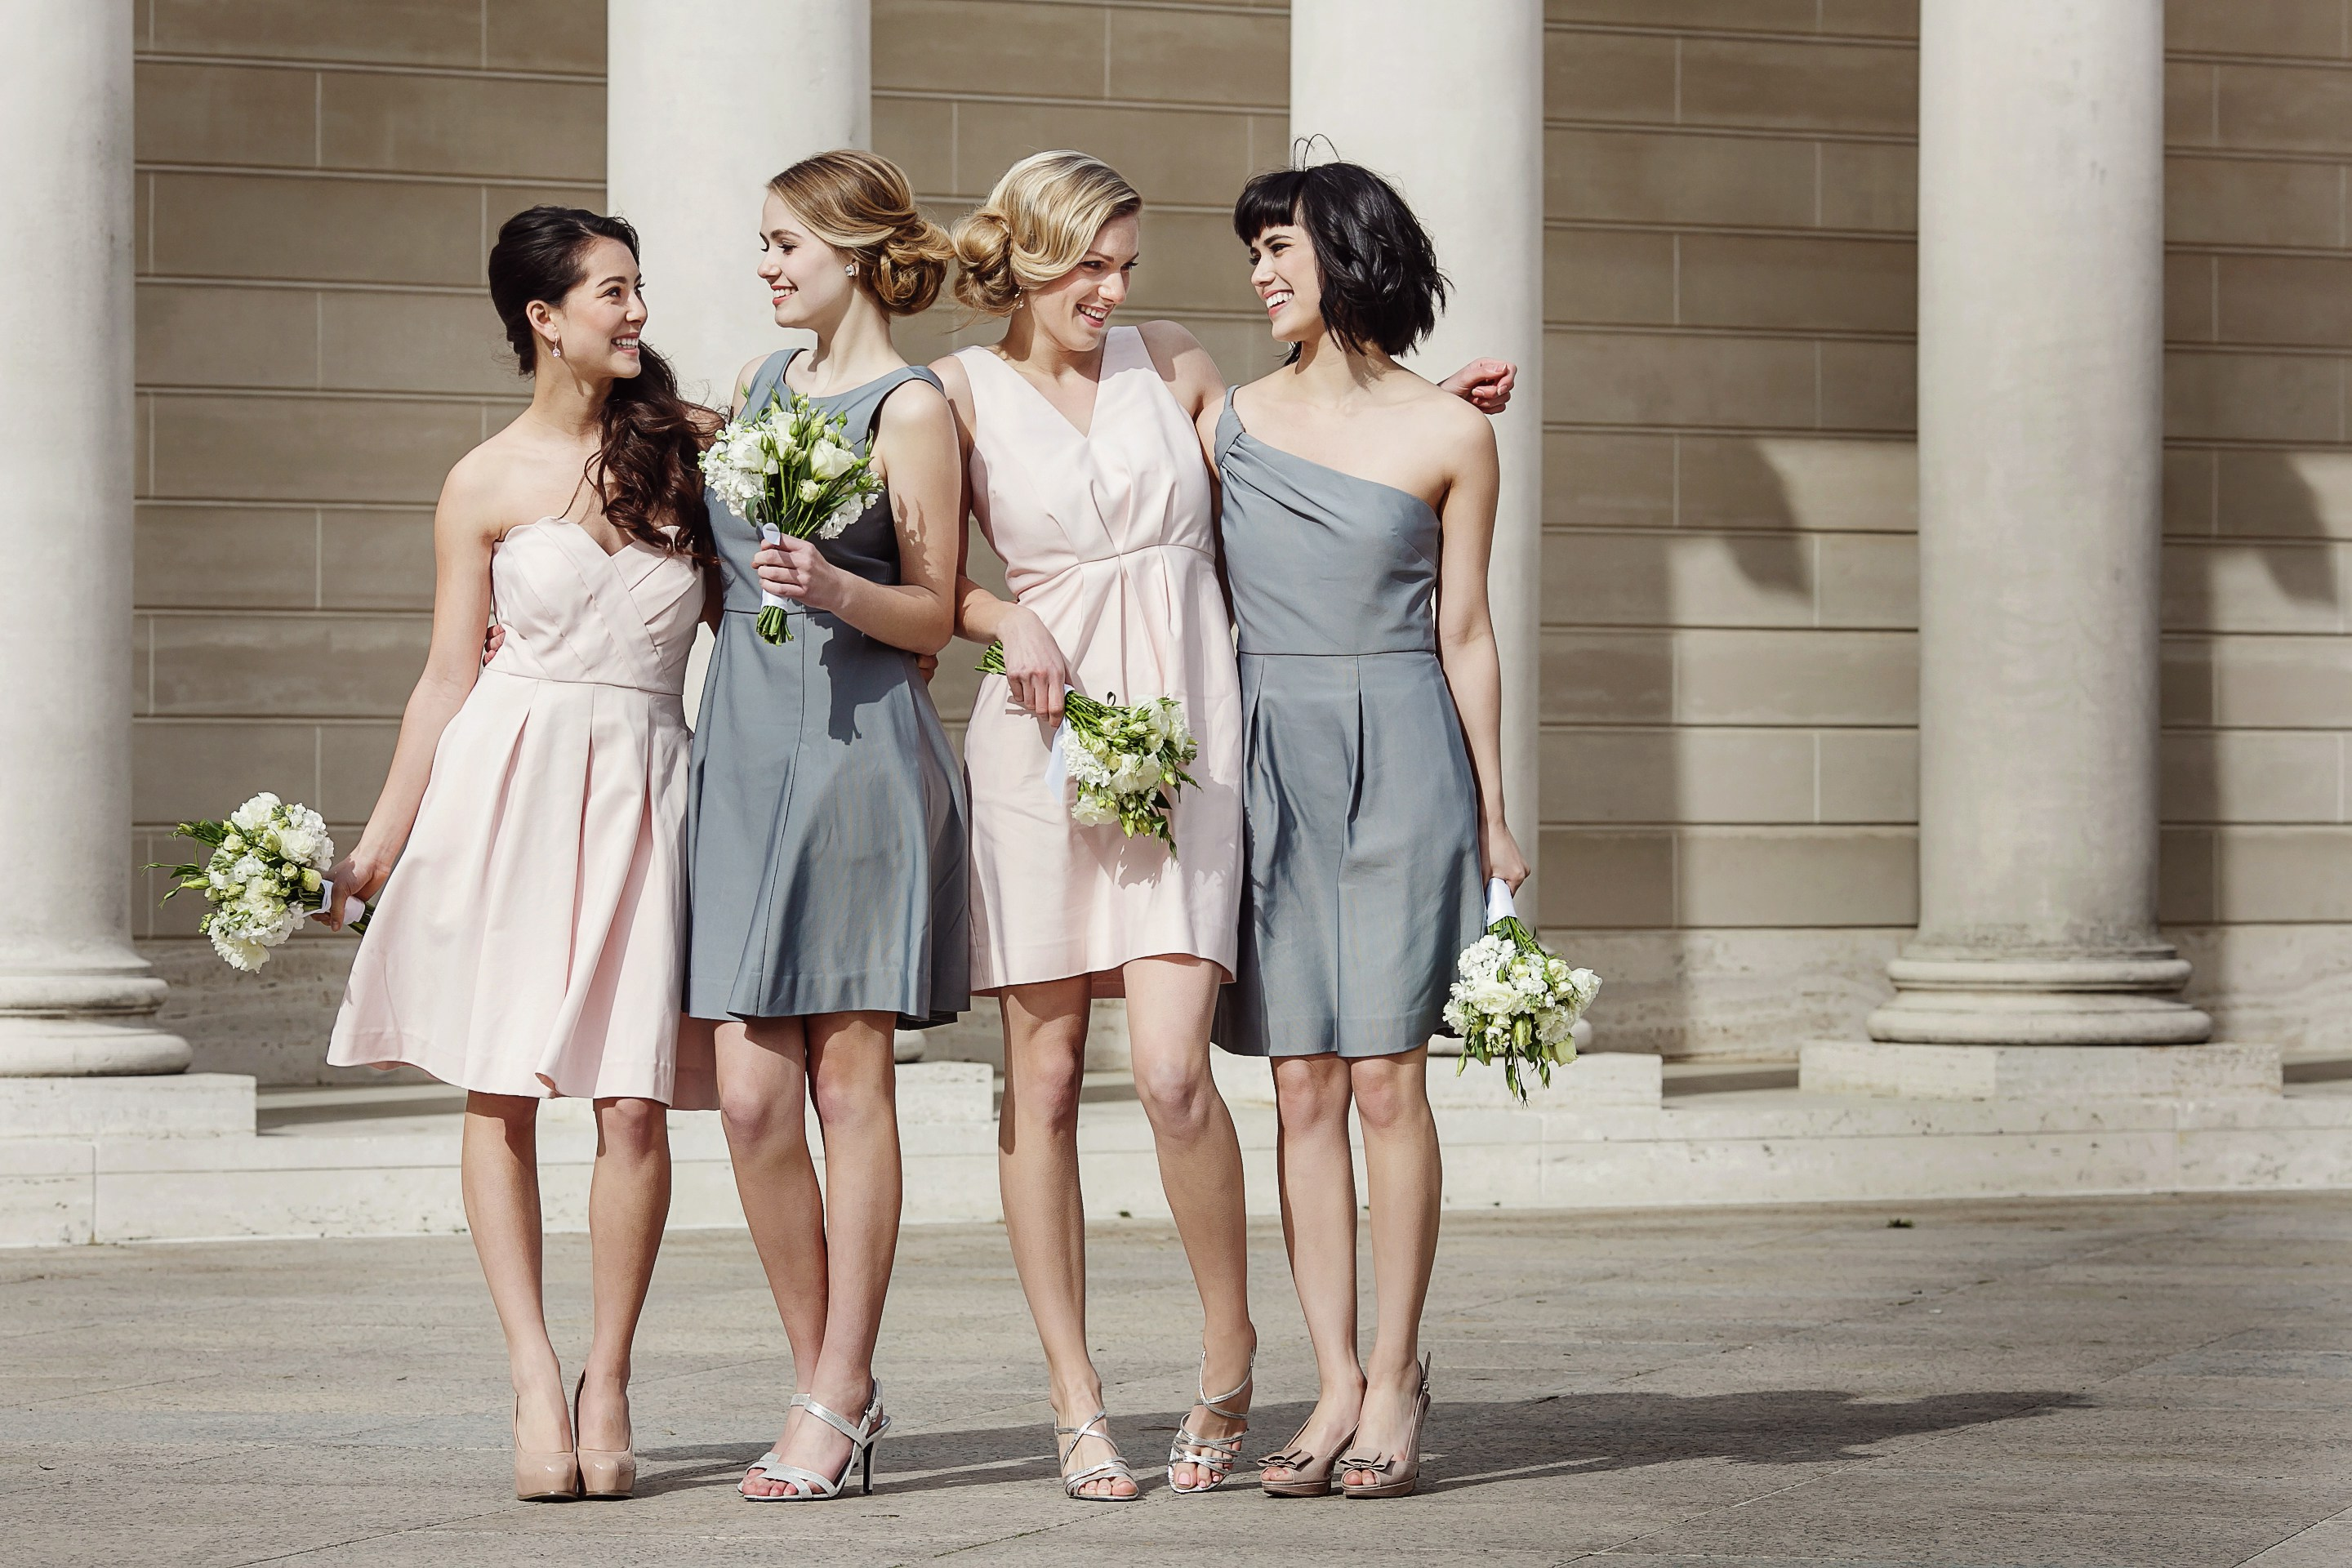 Top 4 picks for bridesmaid dresses rental sites everafterguide top 4 picks for bridesmaid dresses rental sites ombrellifo Choice Image